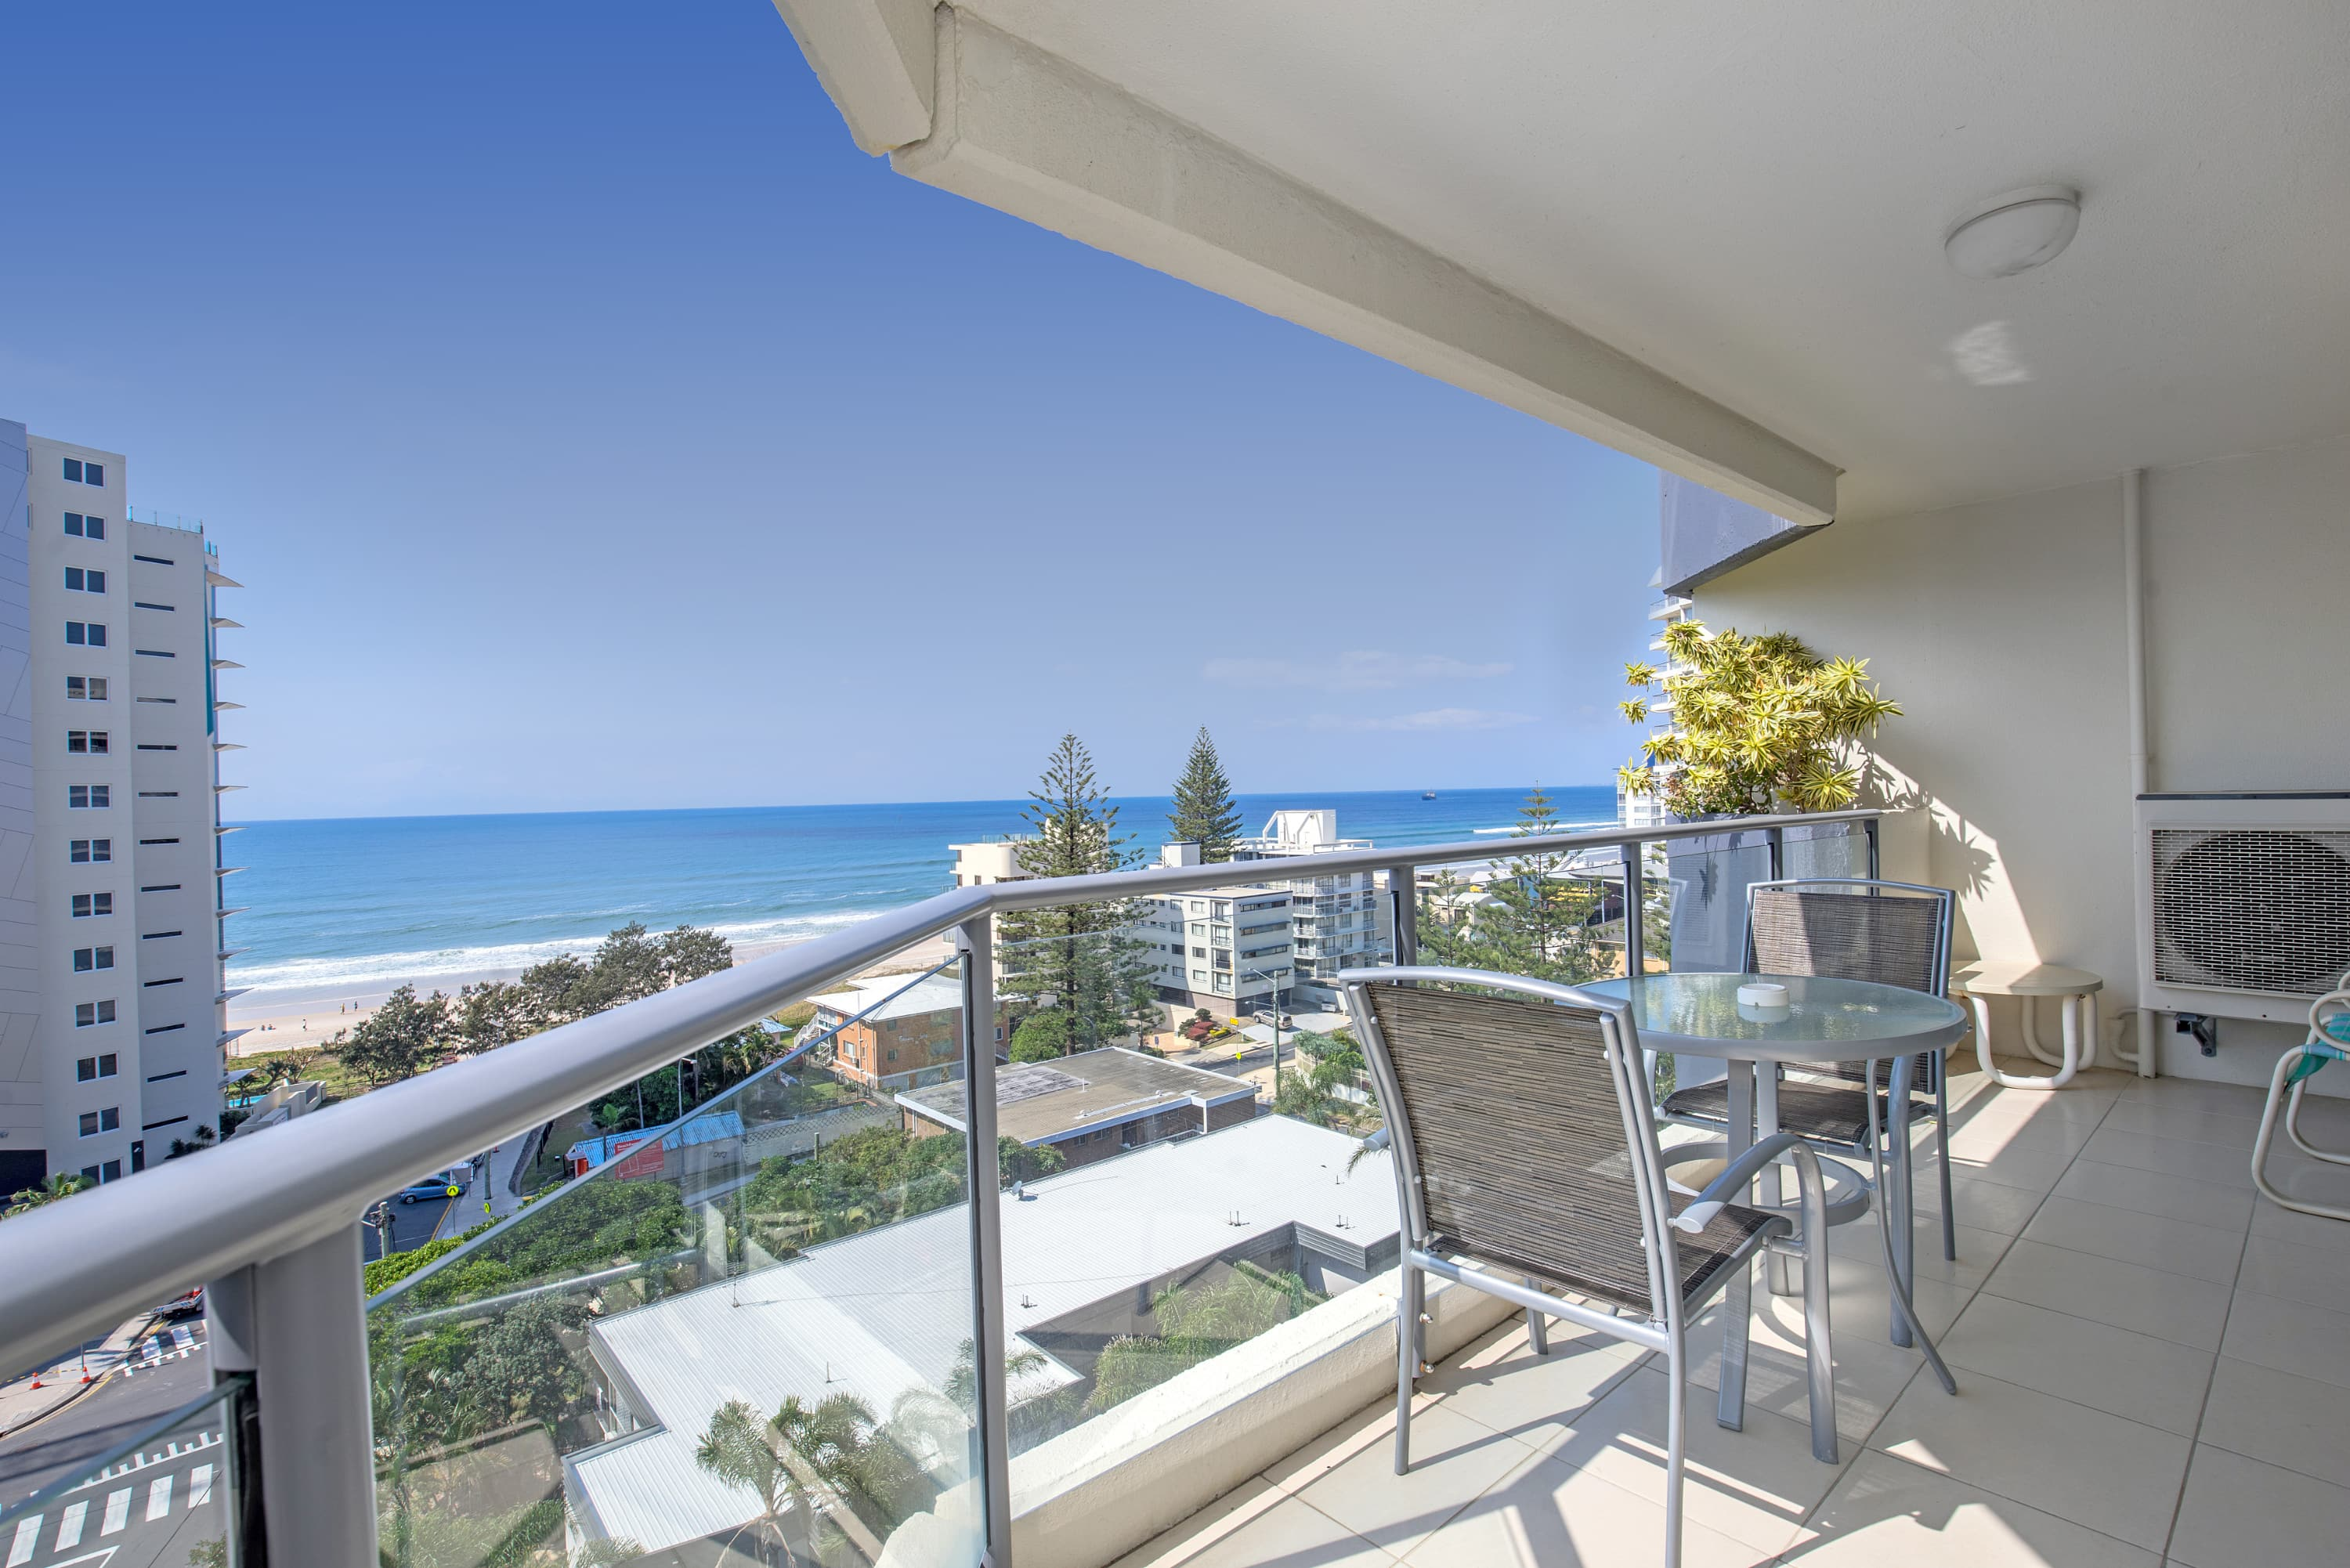 surfers paradise accommodation gold coast baronnet. Black Bedroom Furniture Sets. Home Design Ideas